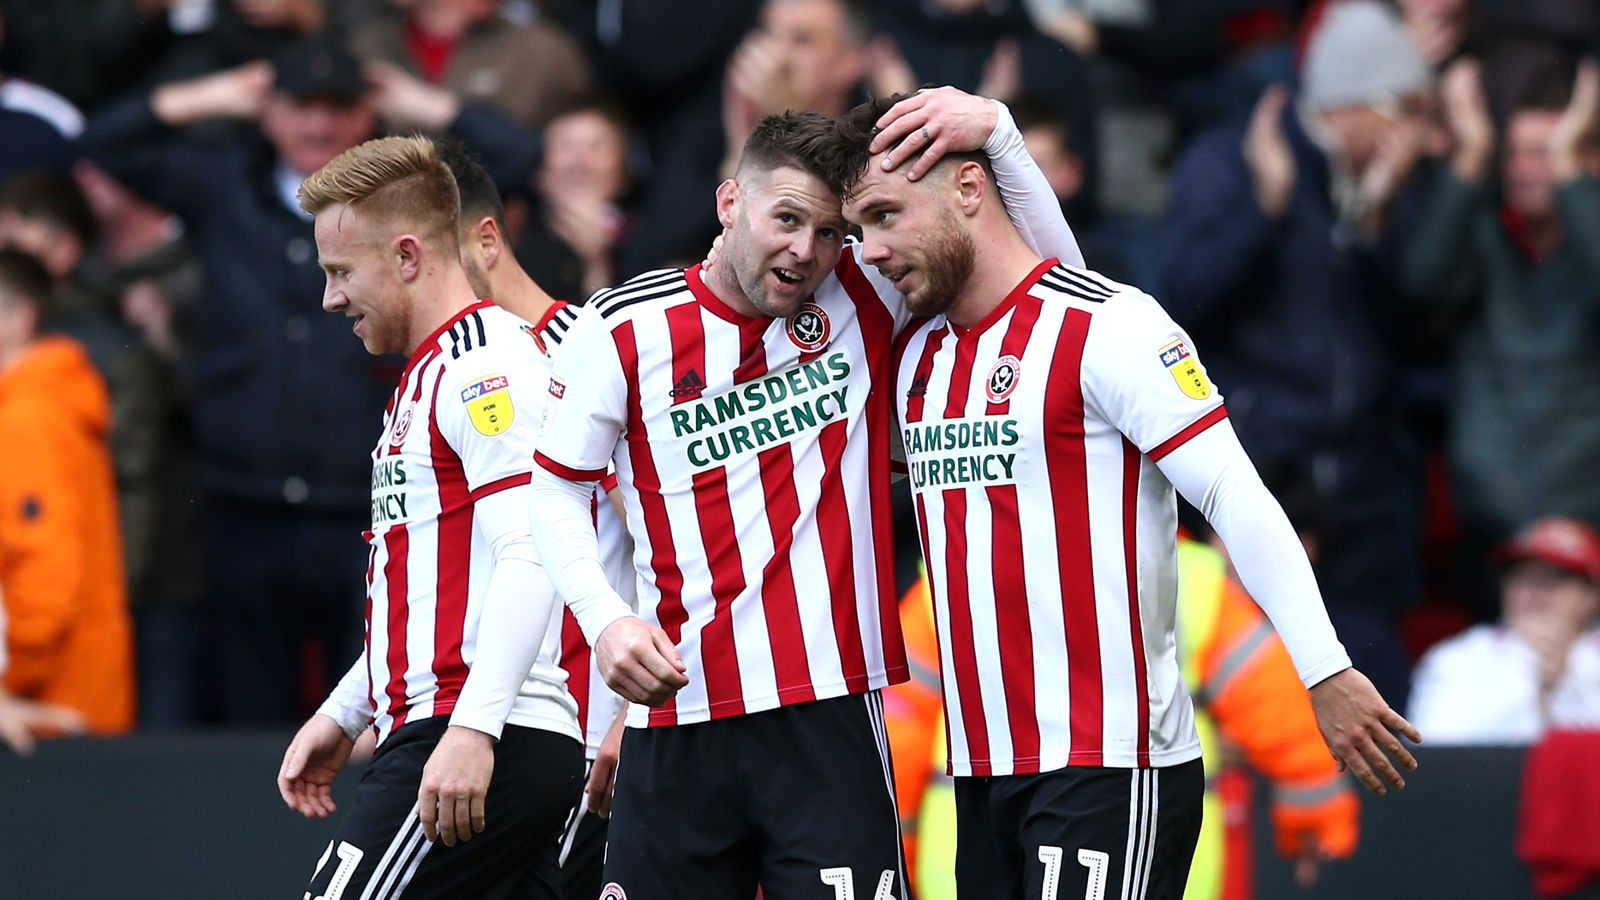 Sheffield United co-owner Kevin McCabe wants to sell club